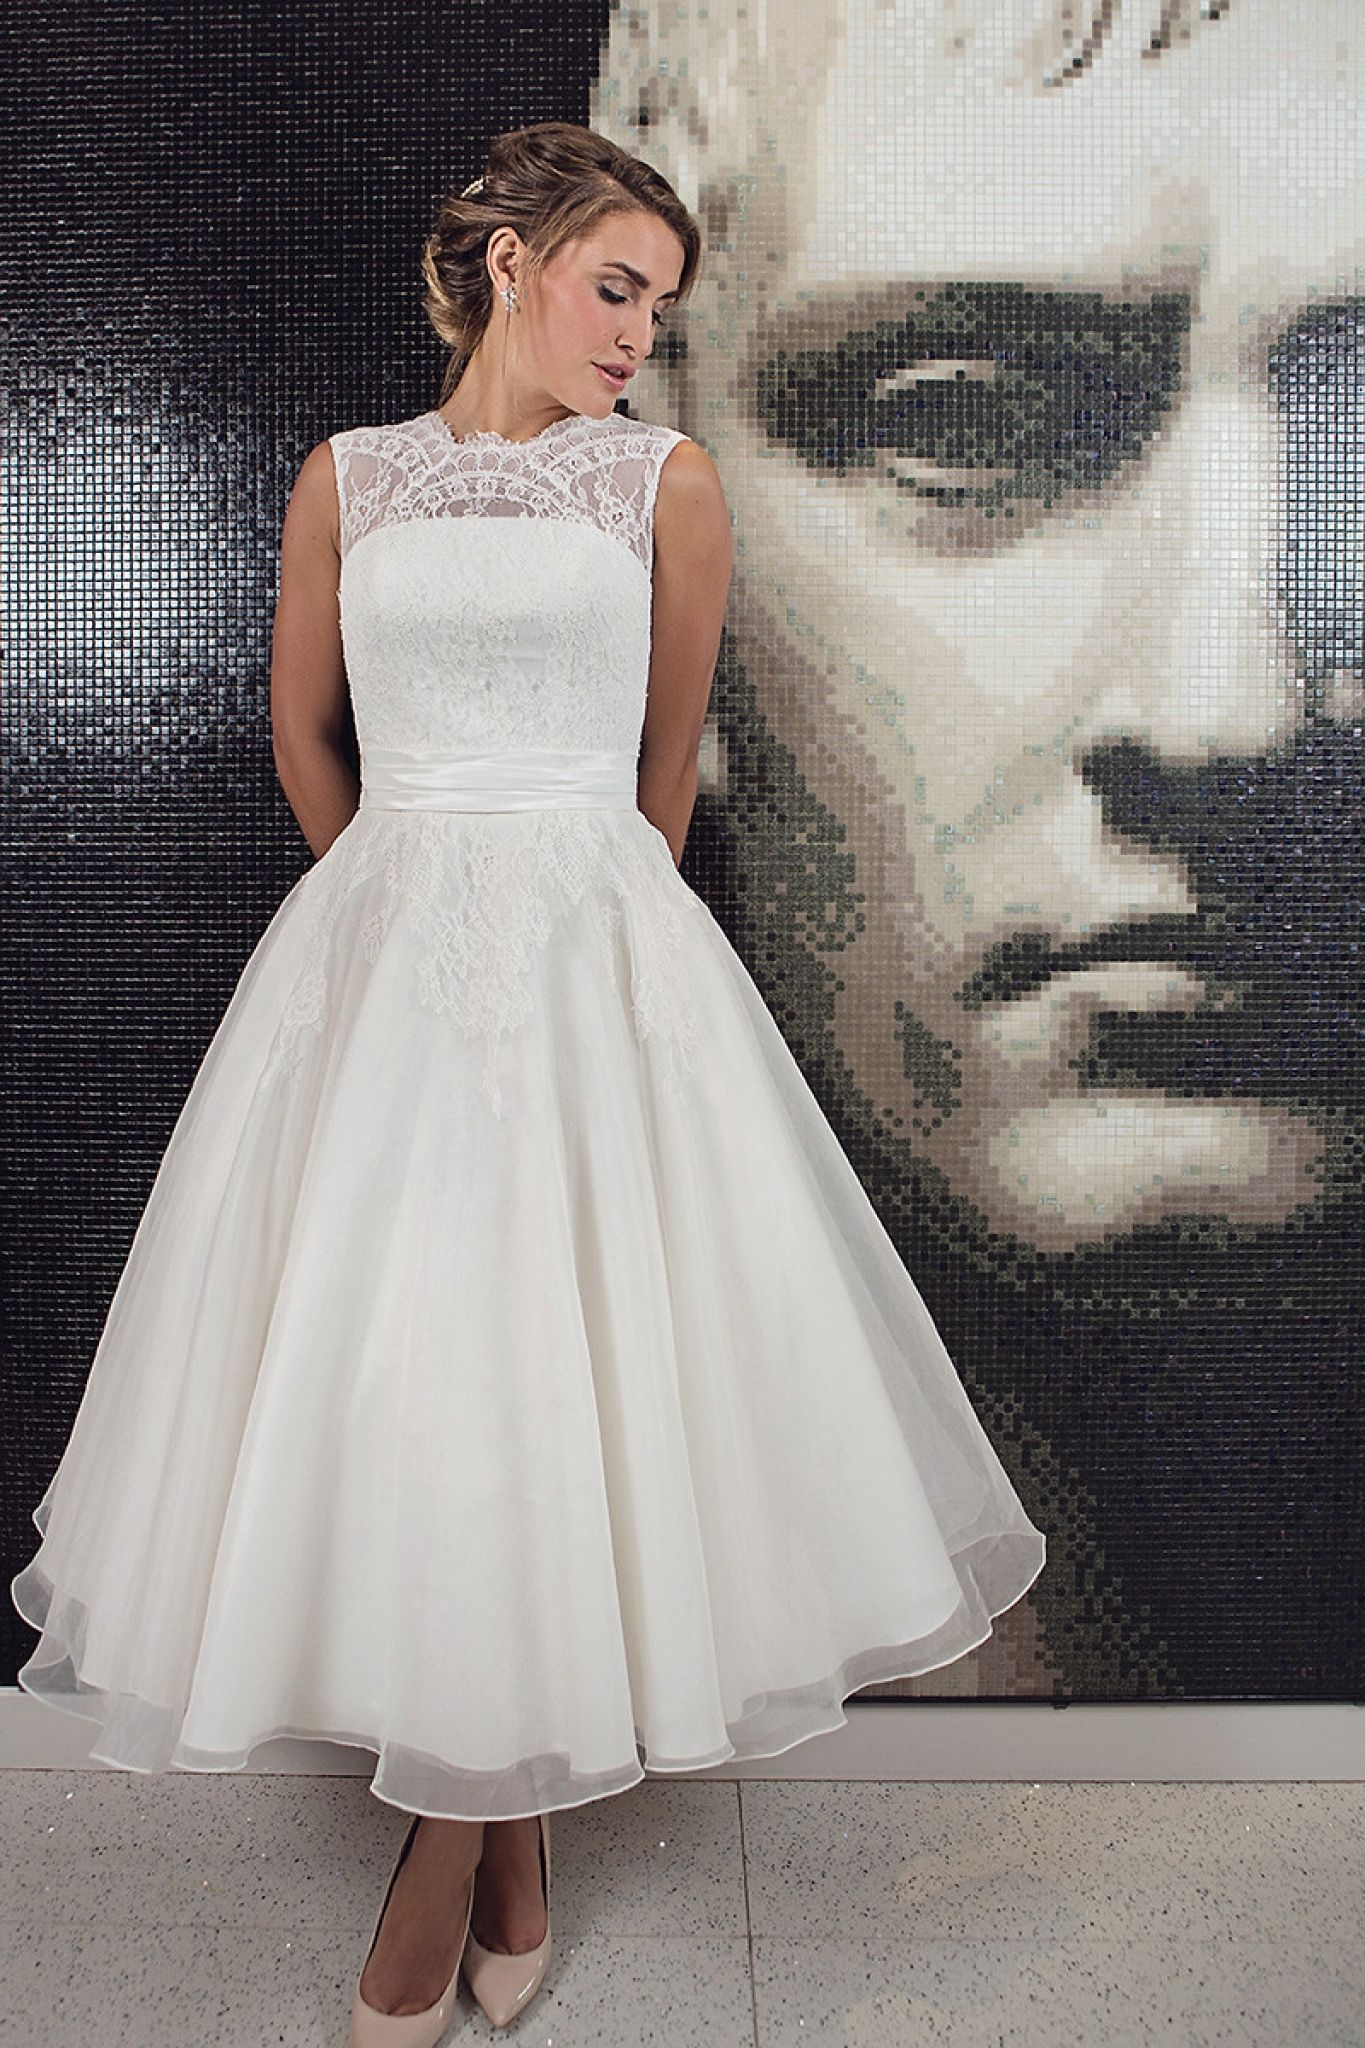 50 style wedding dresses - wedding dresses for plus size Check more ...